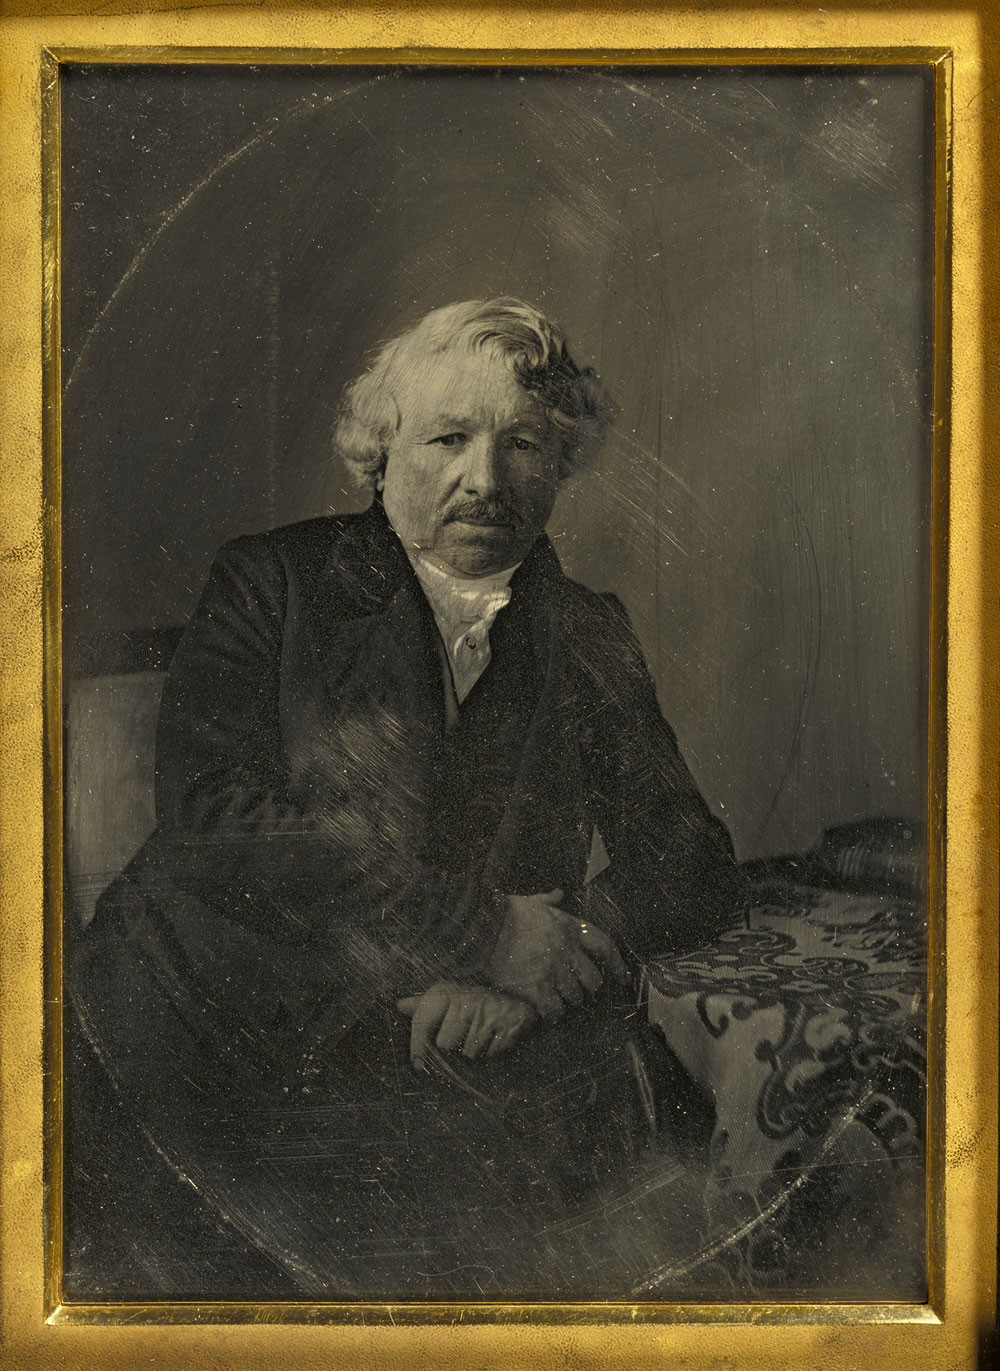 Fotó: Charles Richard Meade (American, 1826-1858)<br />Portrait of Louis-Jacques-Mandé Daguerre<br />1848<br />Daguerreotype, hand-colored<br />1/2 plate<br />Image: 15.7 x 11.5 cm (6 3/16 x 4 1/2 in.)<br />Mat: 16 x 12 cm (6 5/16 x 4 13/16 in.)<br />Object (whole): 22.1 x 17.8 cm (8 11/16 x 7 in.)<br />The J. Paul Getty Museum, Los Angeles